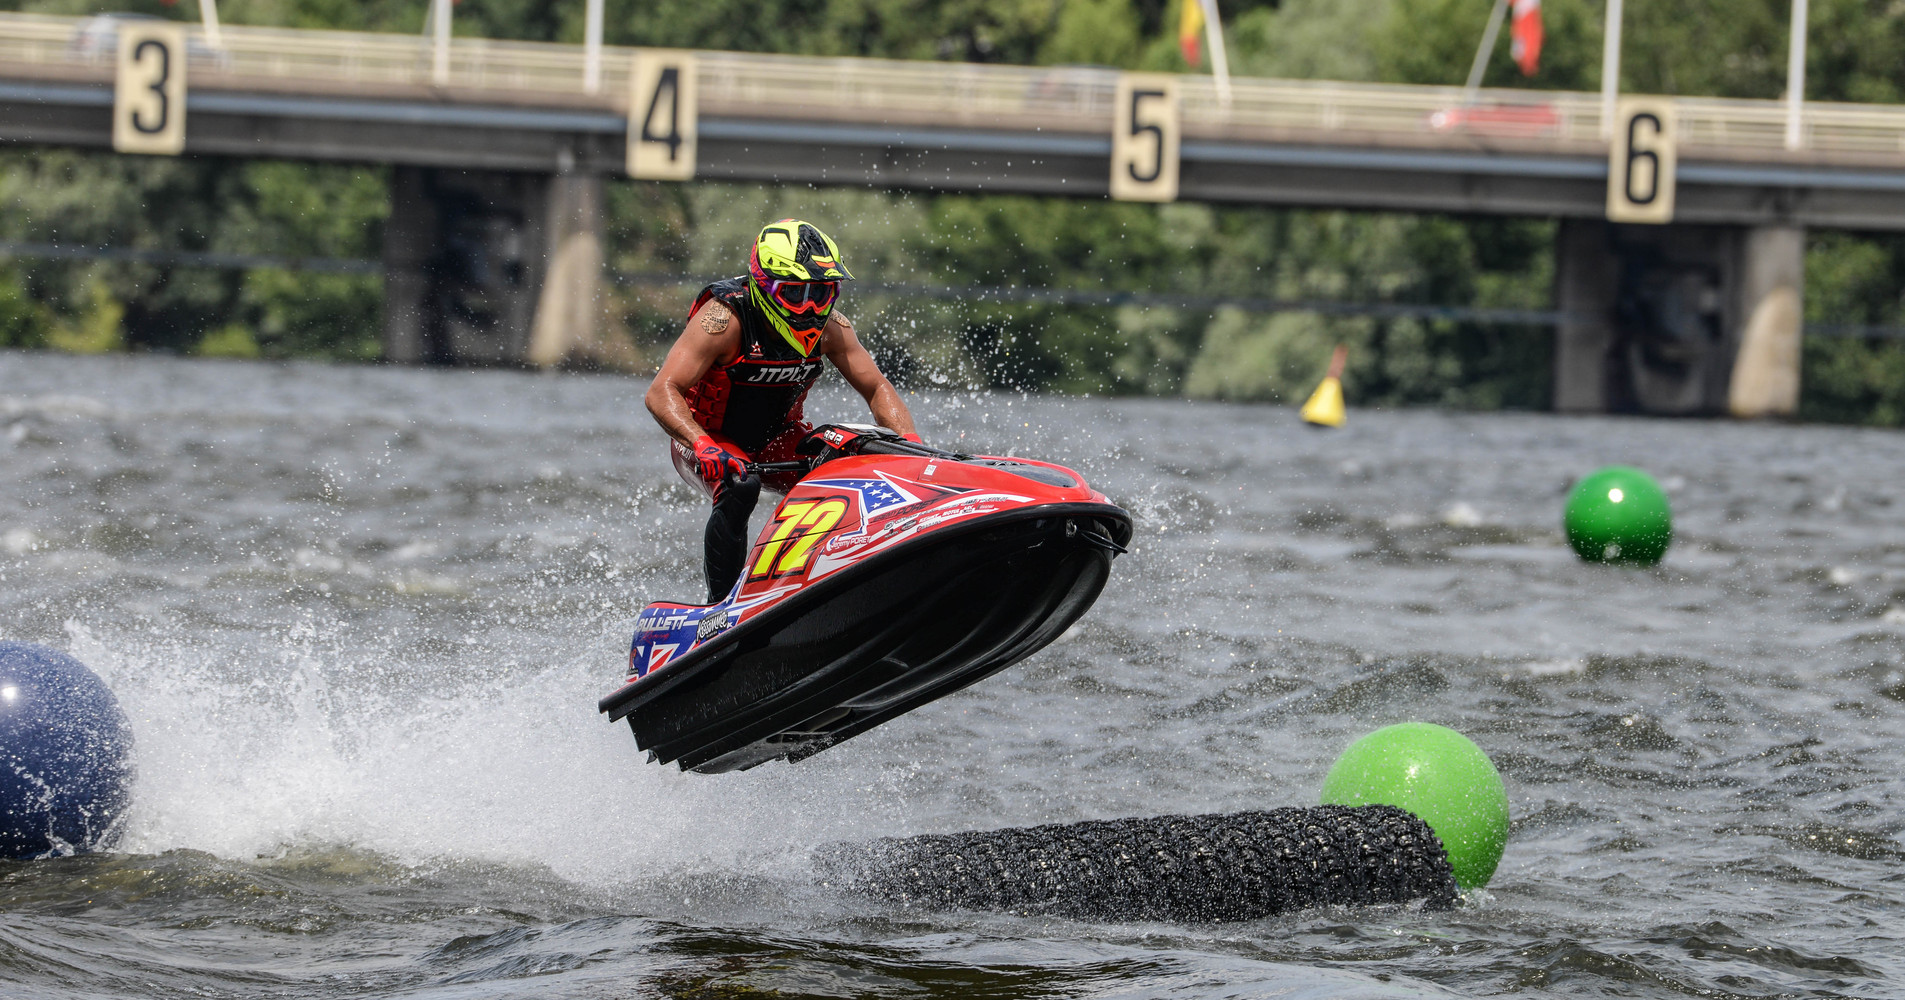 Jeremy Poret is leading the pack and close to a new Jetcross title